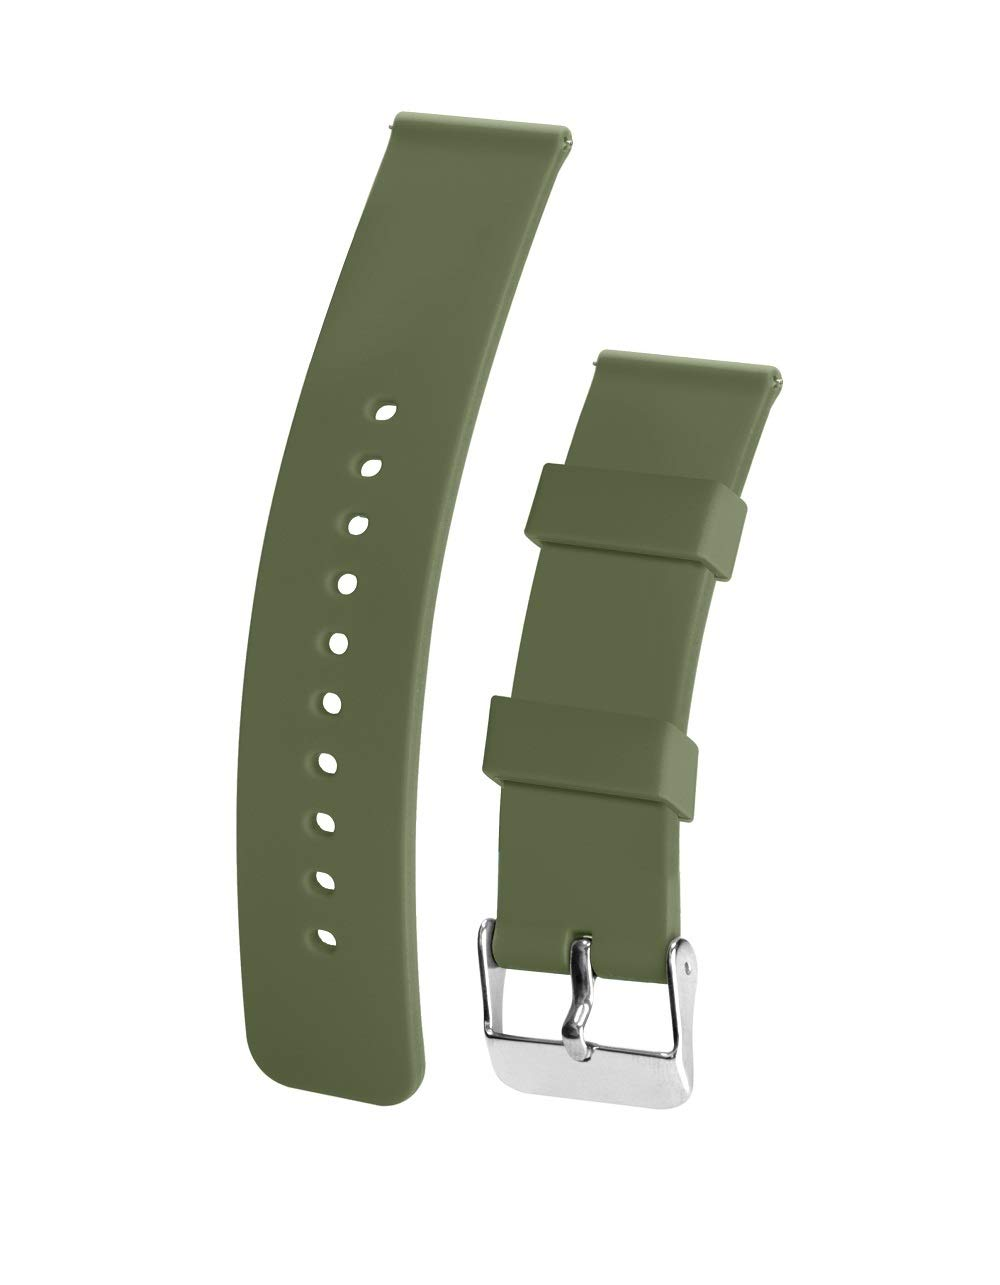 Silicone Watchband Strap Quick Release Soft Rubber Surface with Textured Non-Slip Back Waterproof & Washable Color & Size Variety